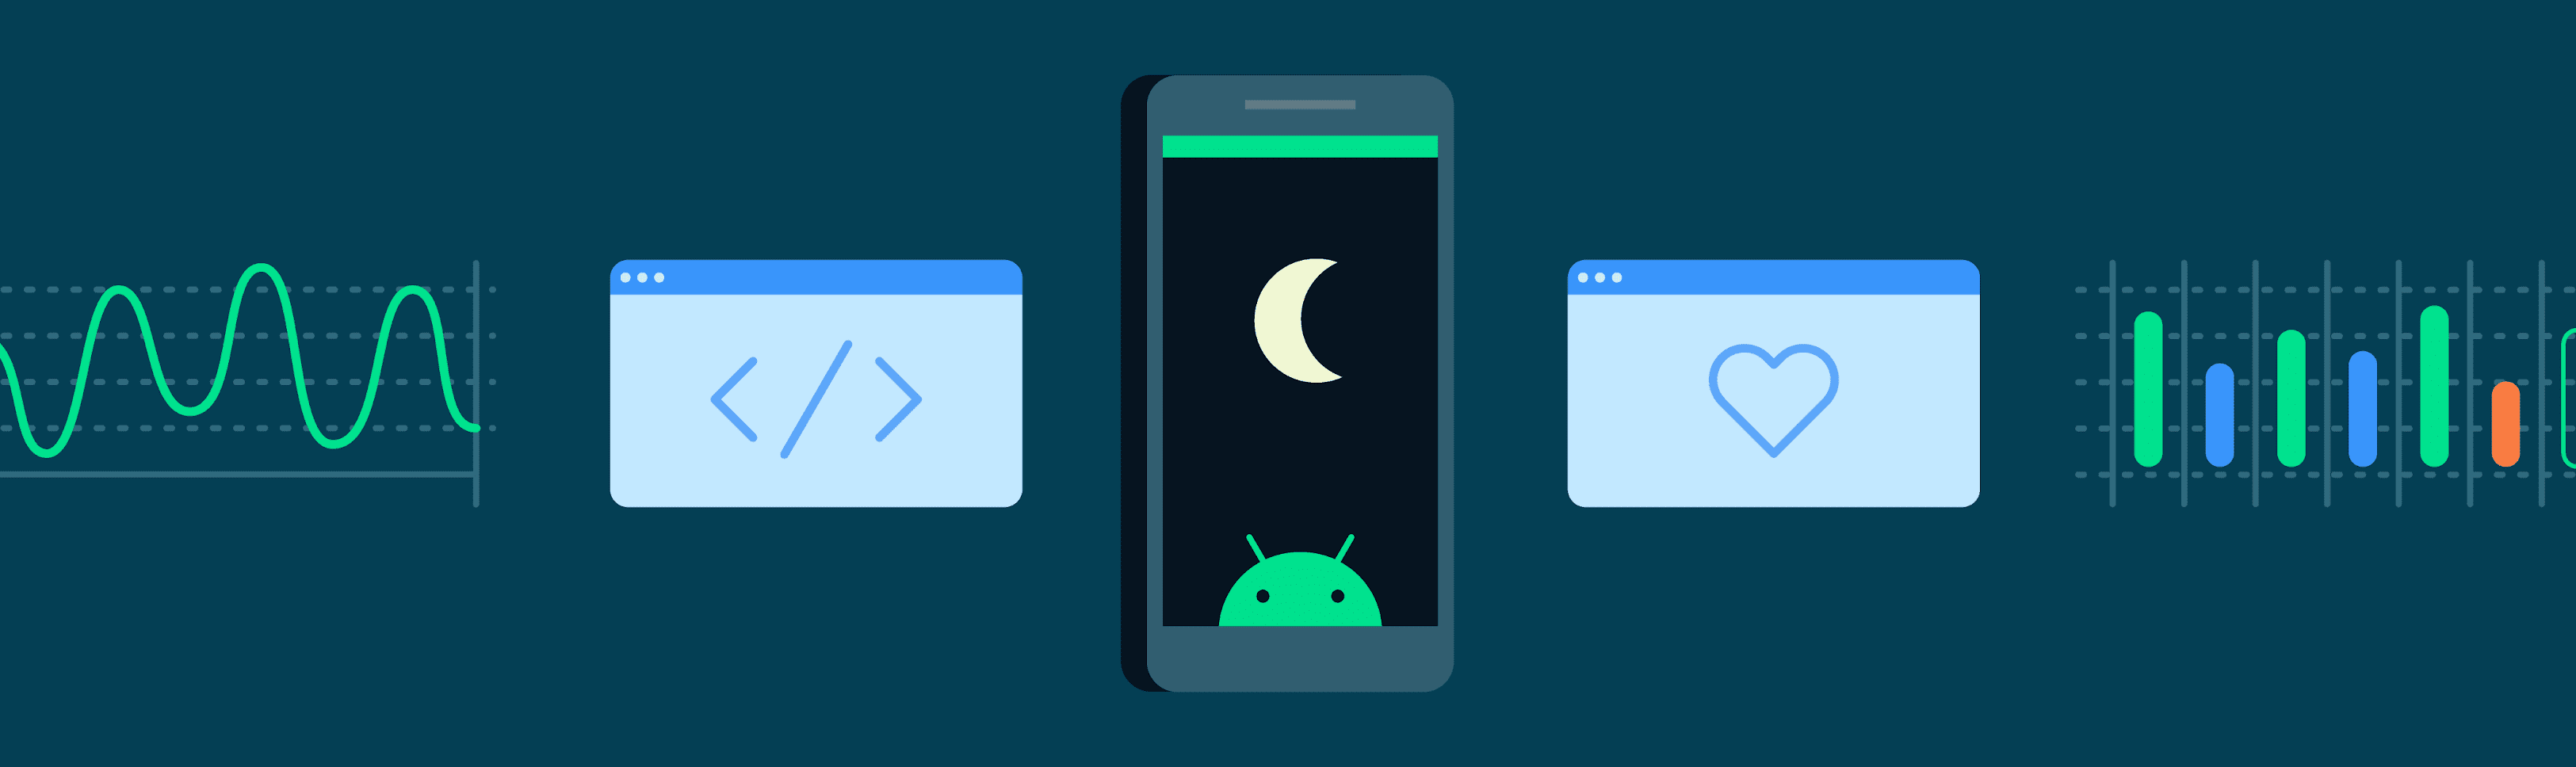 Illustration of phone with moon and android logo on the screen